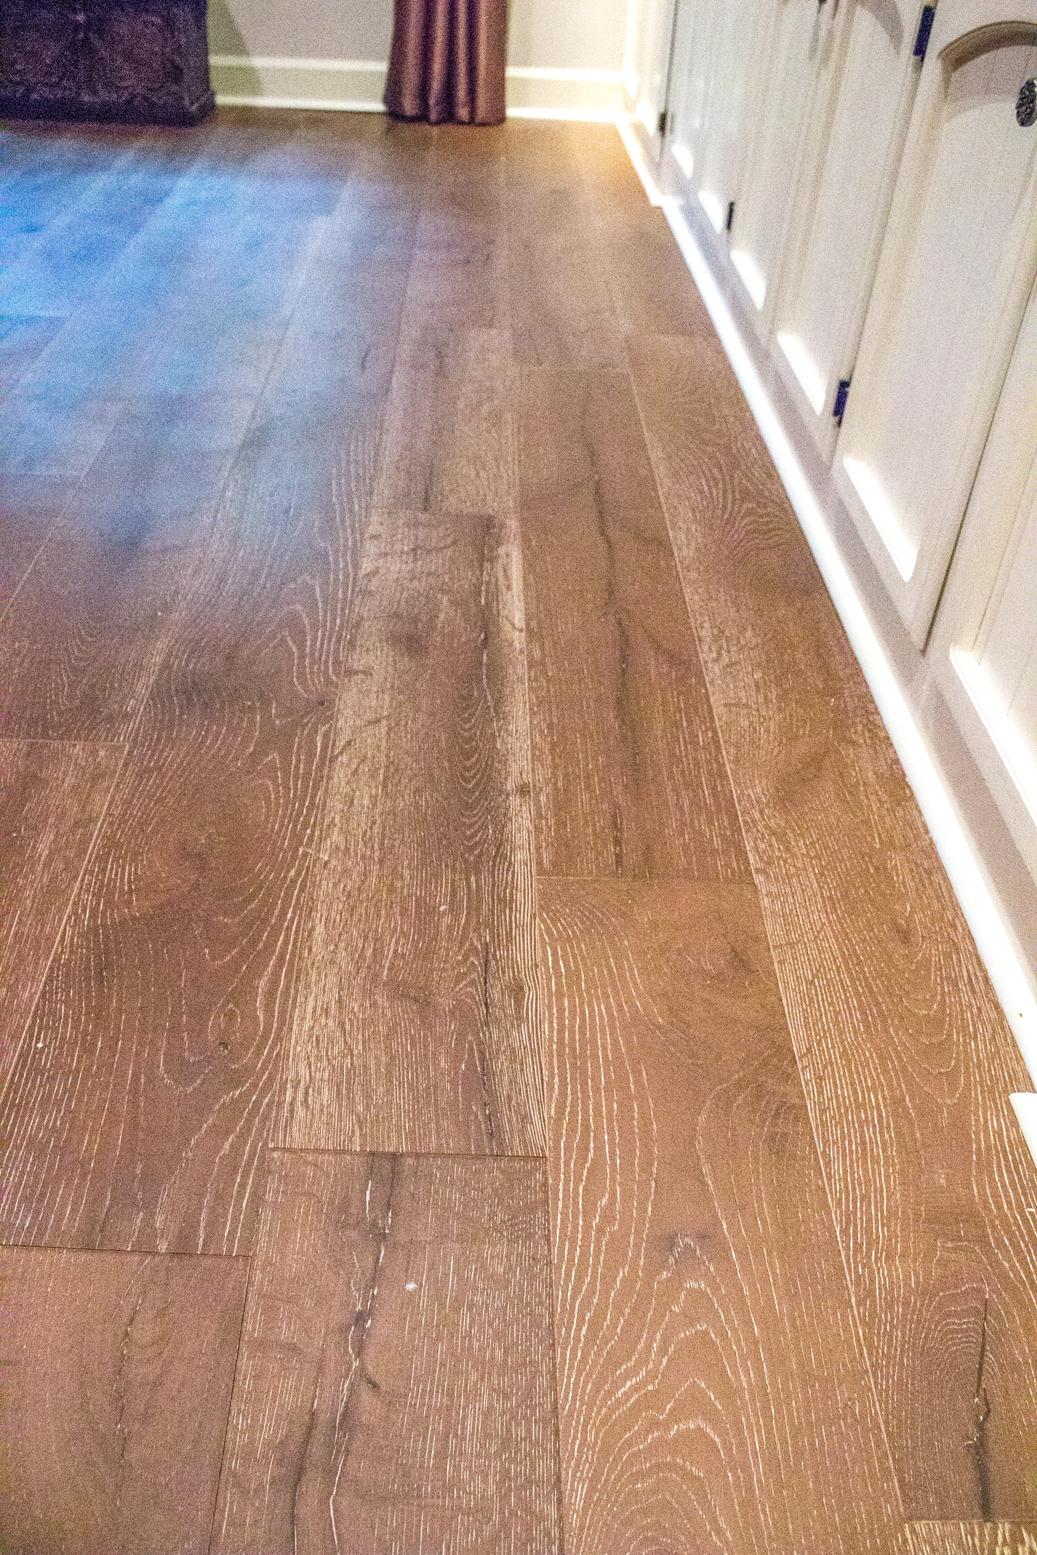 solid depot wood hardwood sq flooring p wide rustic the home floor ft in bruce varying x farm antique hickory timbers vintage case length